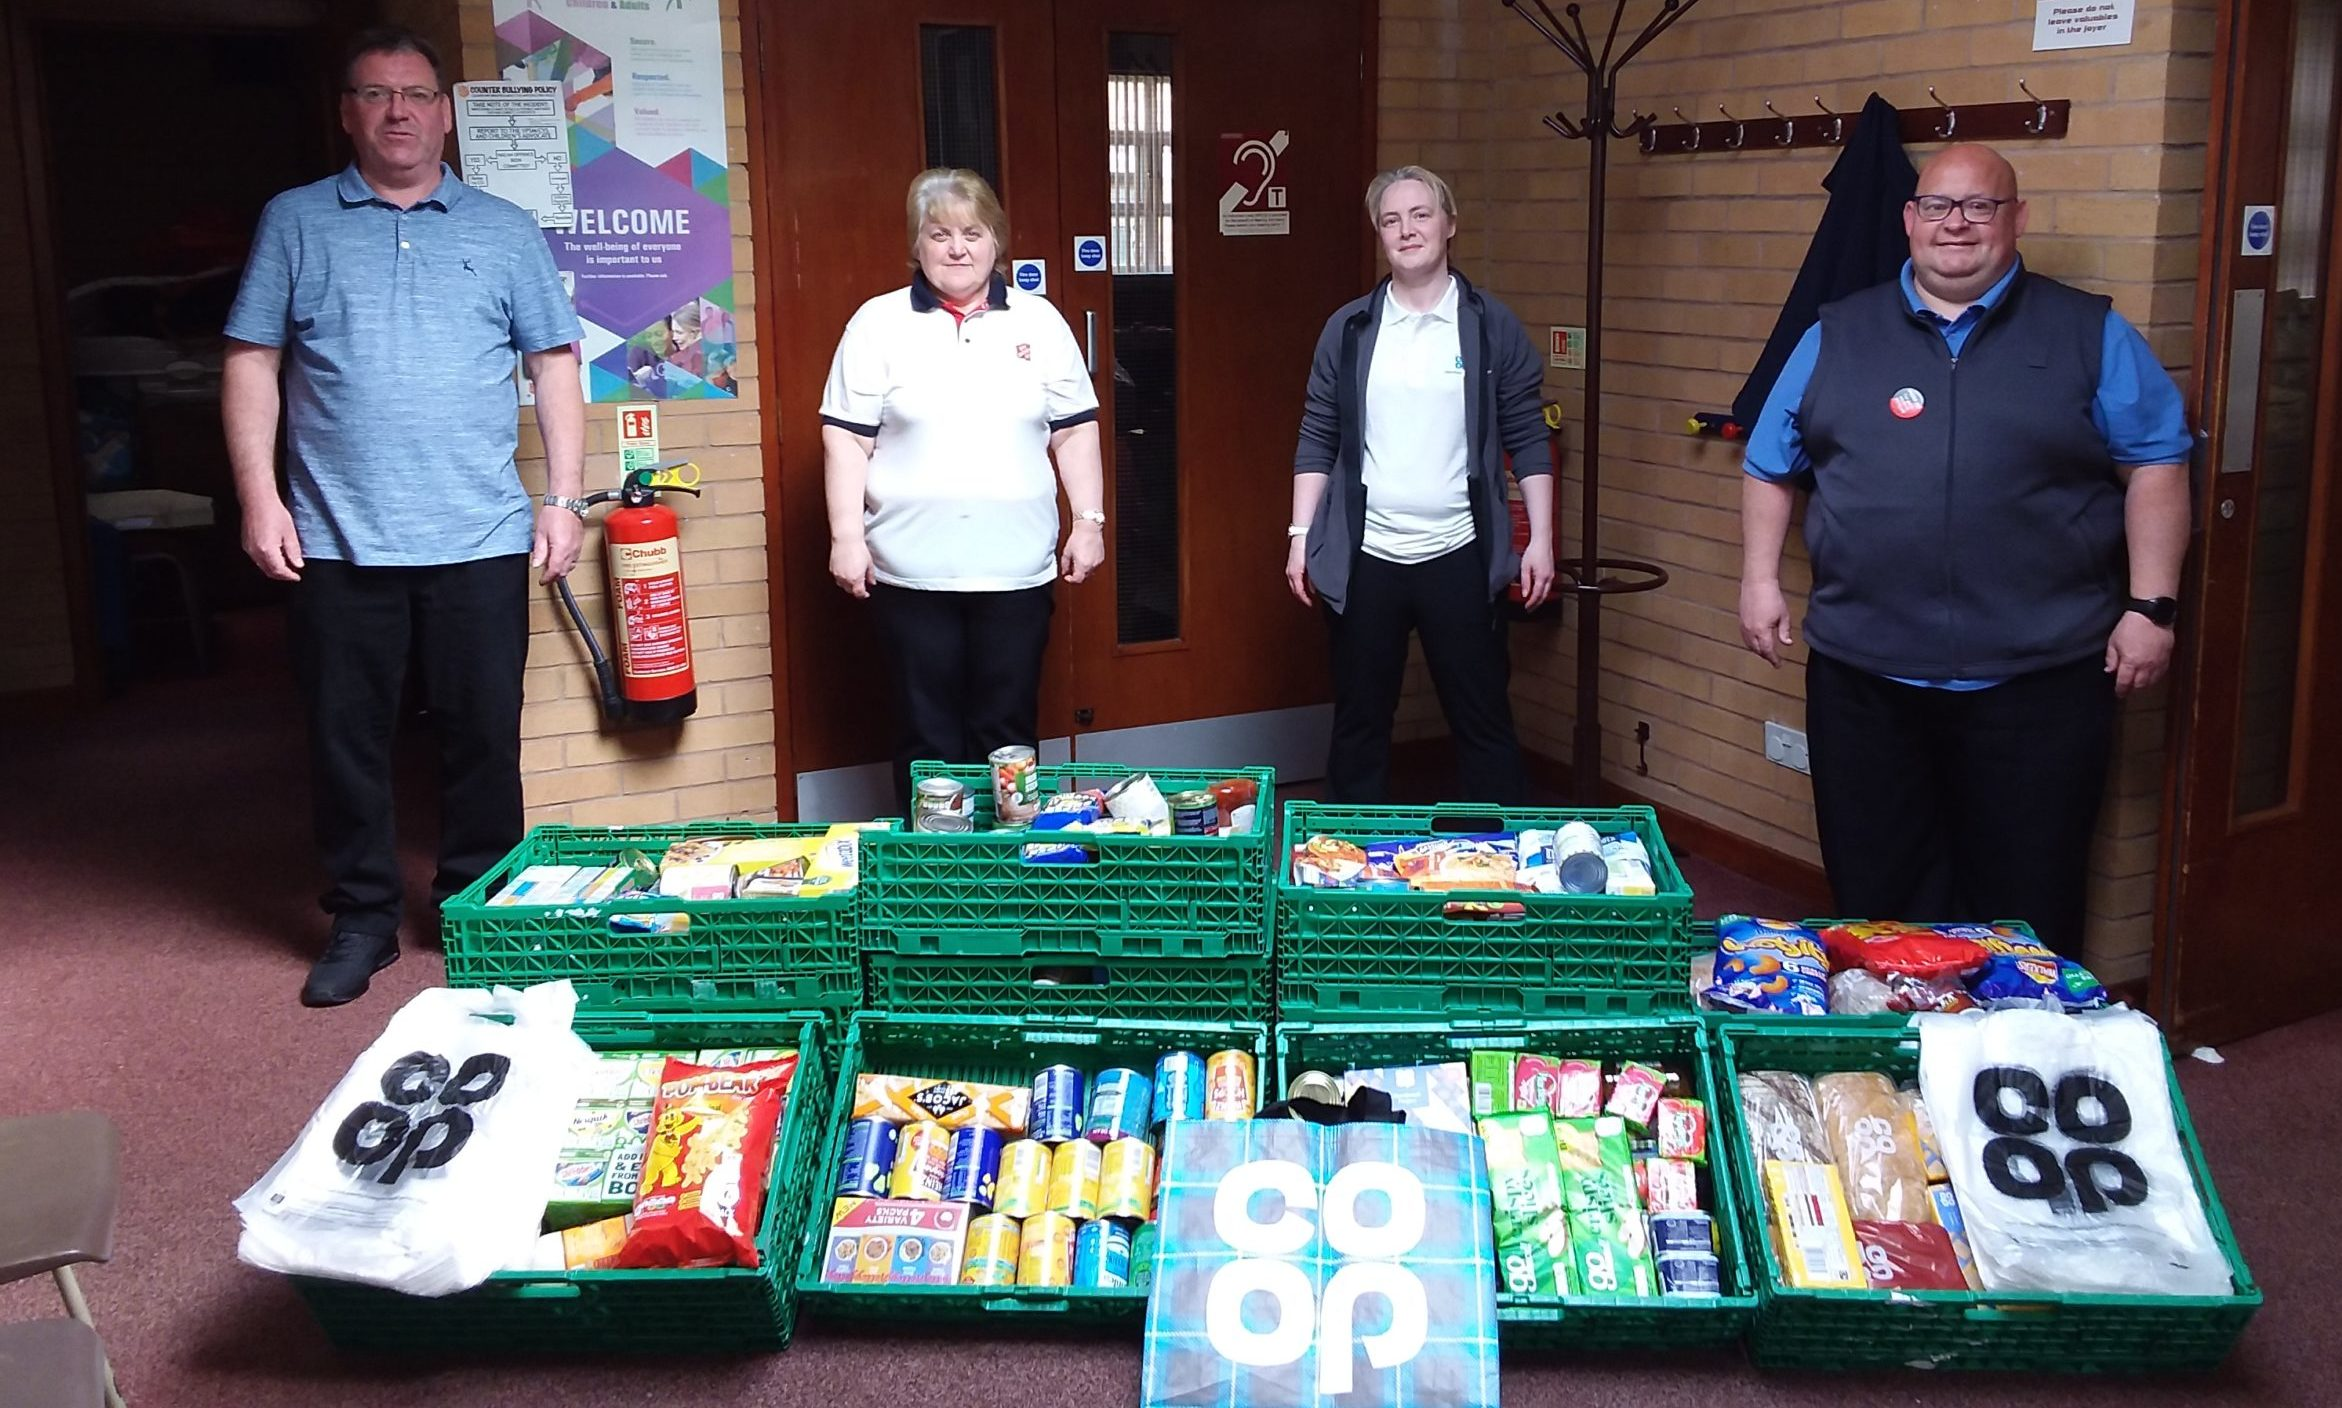 Fraserburgh Co-op donated £400 worth of food to the Fraserburgh Salvation Army food bank.